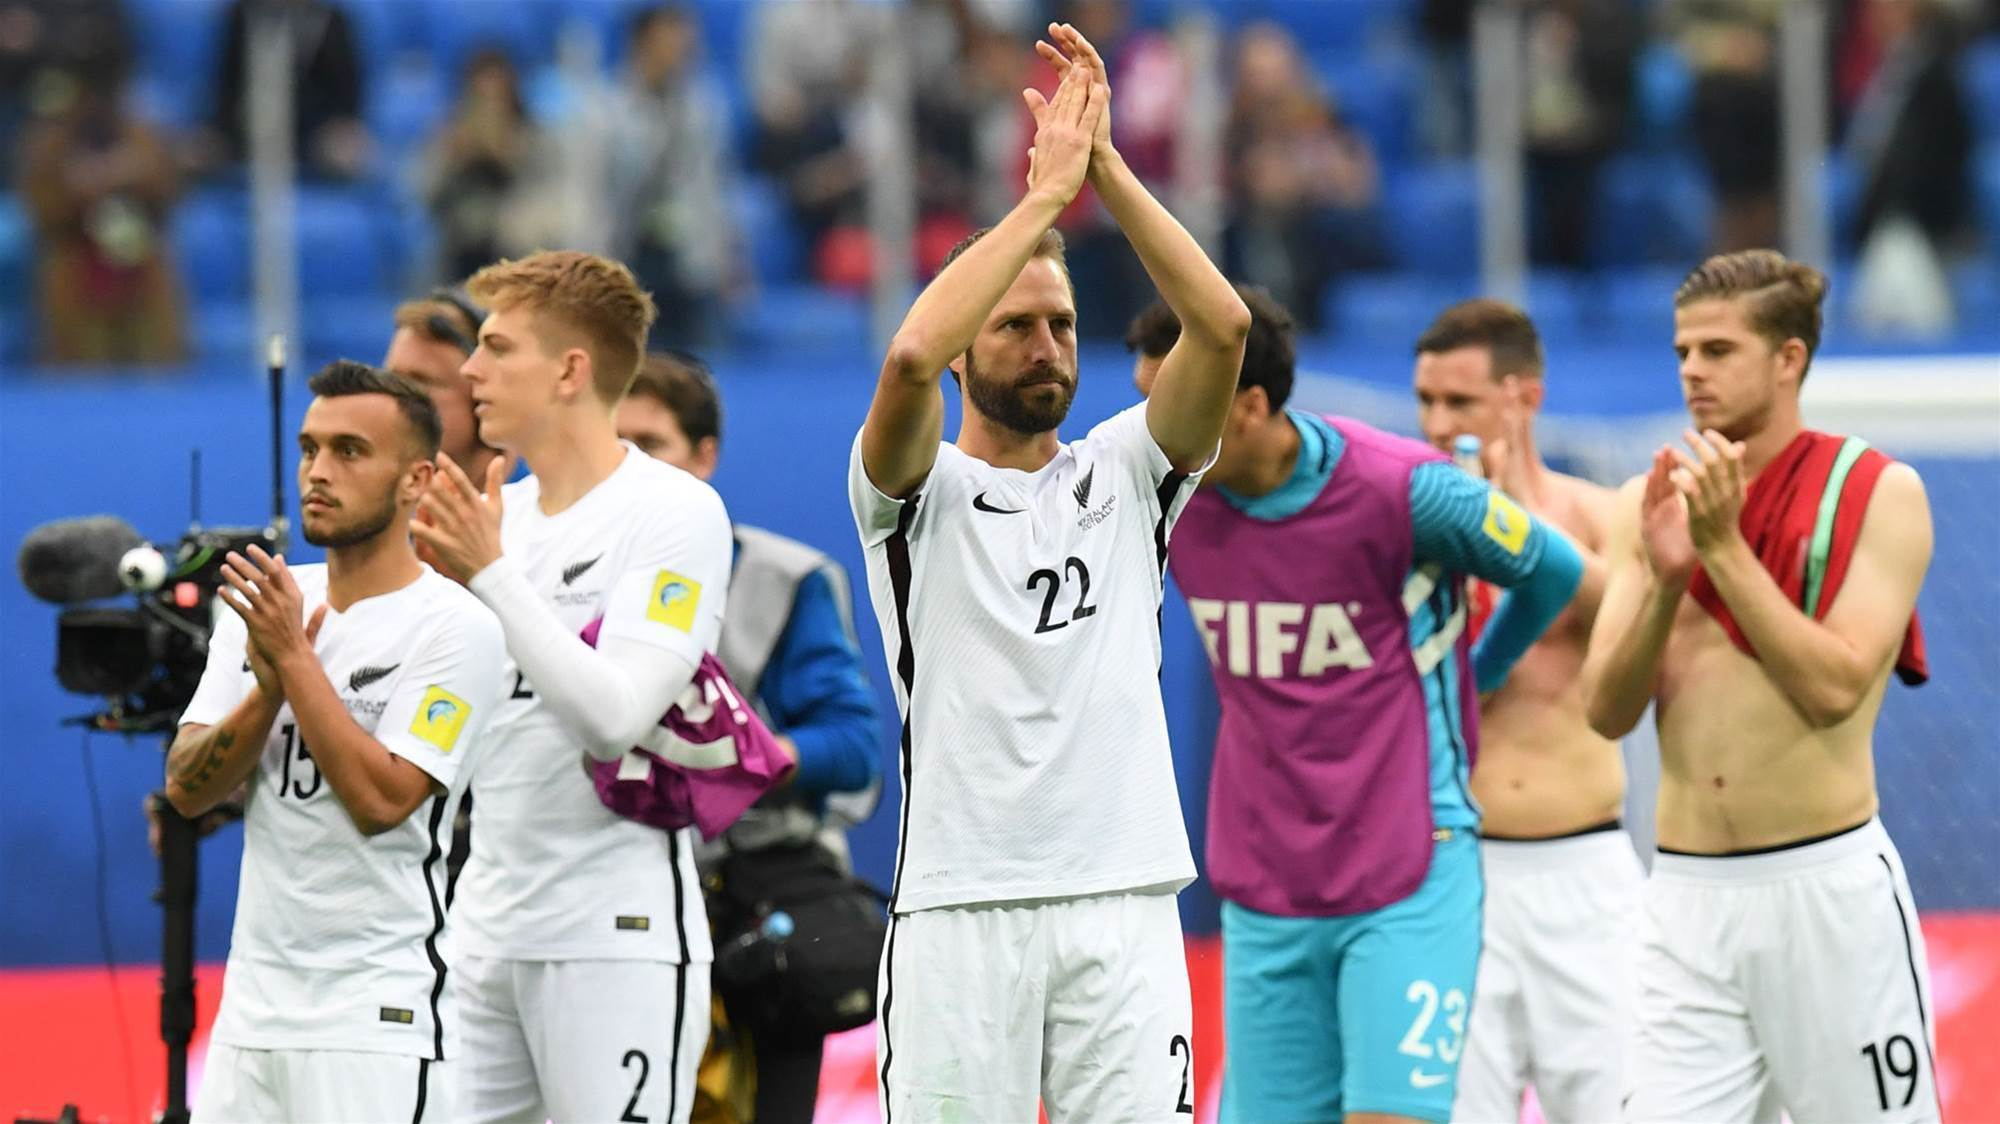 New Zealand player ratings - who impressed at the Confederations Cup?